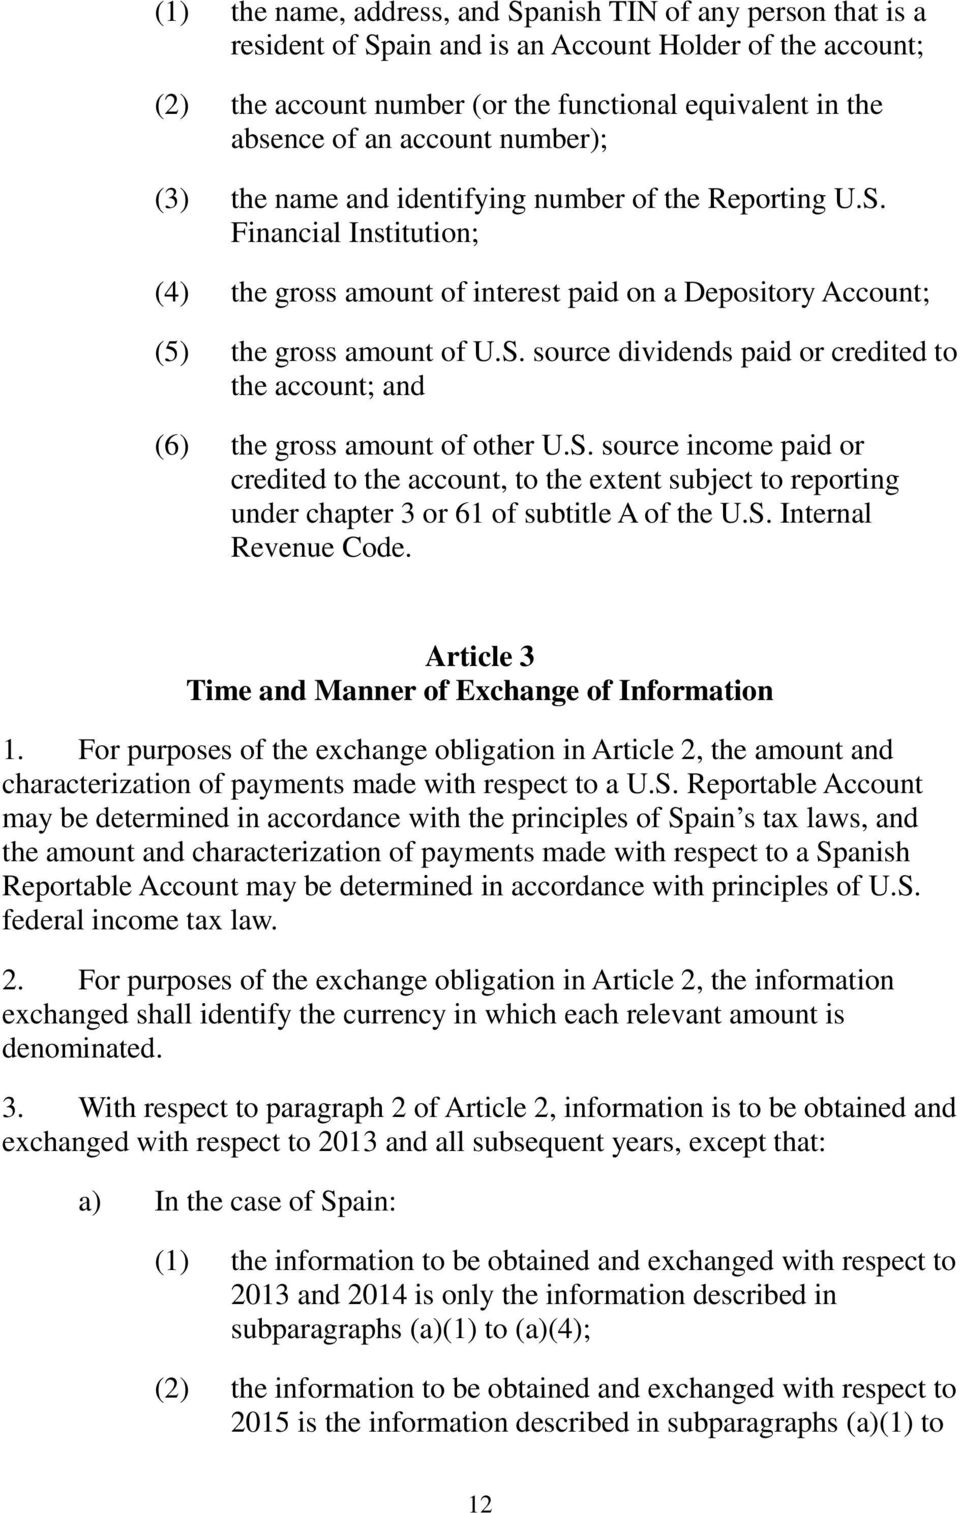 S. source income paid or credited to the account, to the extent subject to reporting under chapter 3 or 61 of subtitle A of the U.S. Internal Revenue Code.